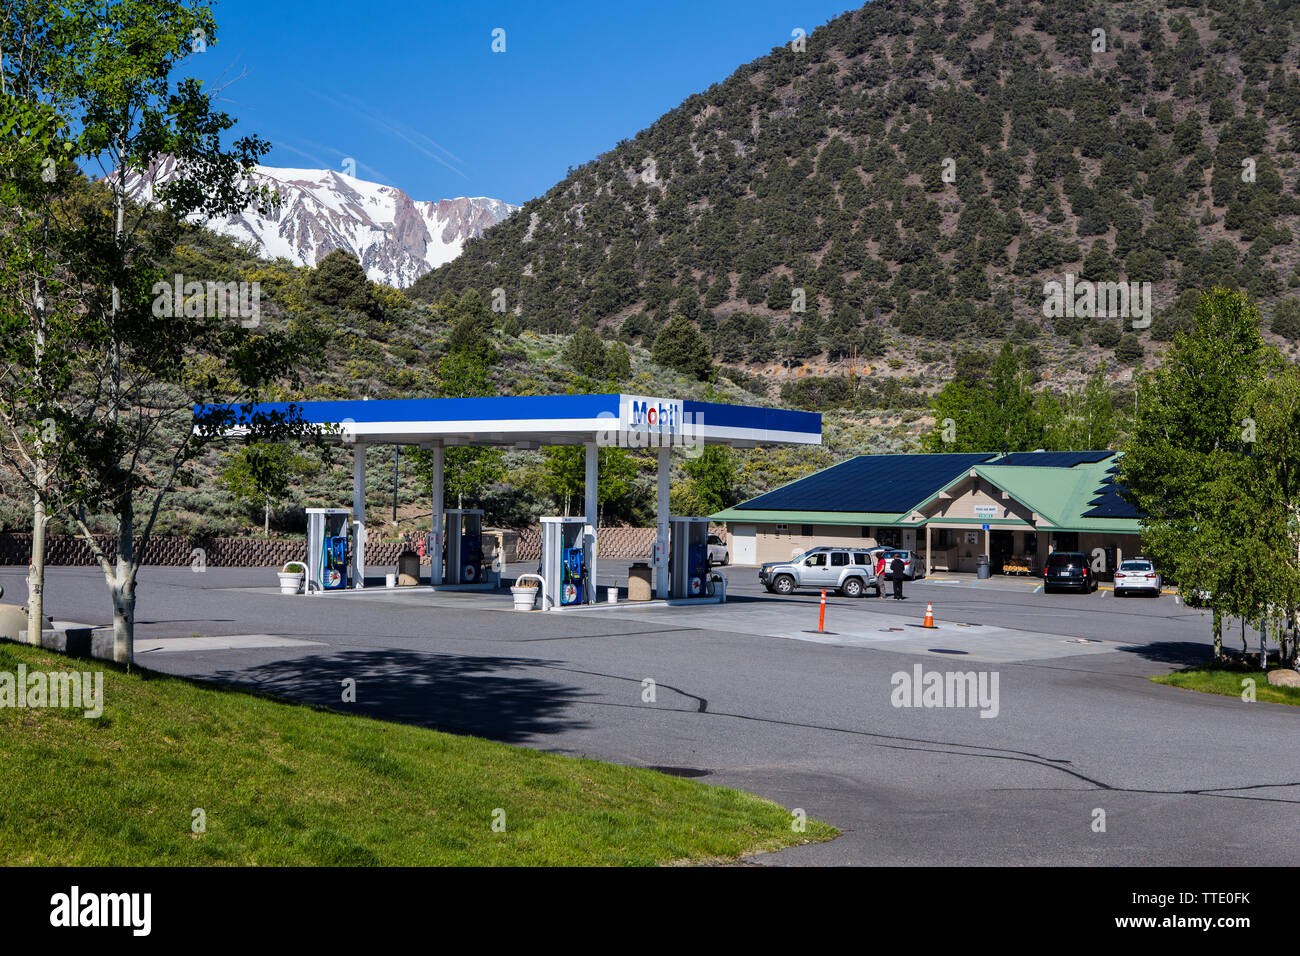 The Tioga gas mart and the famous Whoa nellie deli at  the mobil gas station on the corner of highways 395 & 120 in Lee Vining California USA Stock Photo